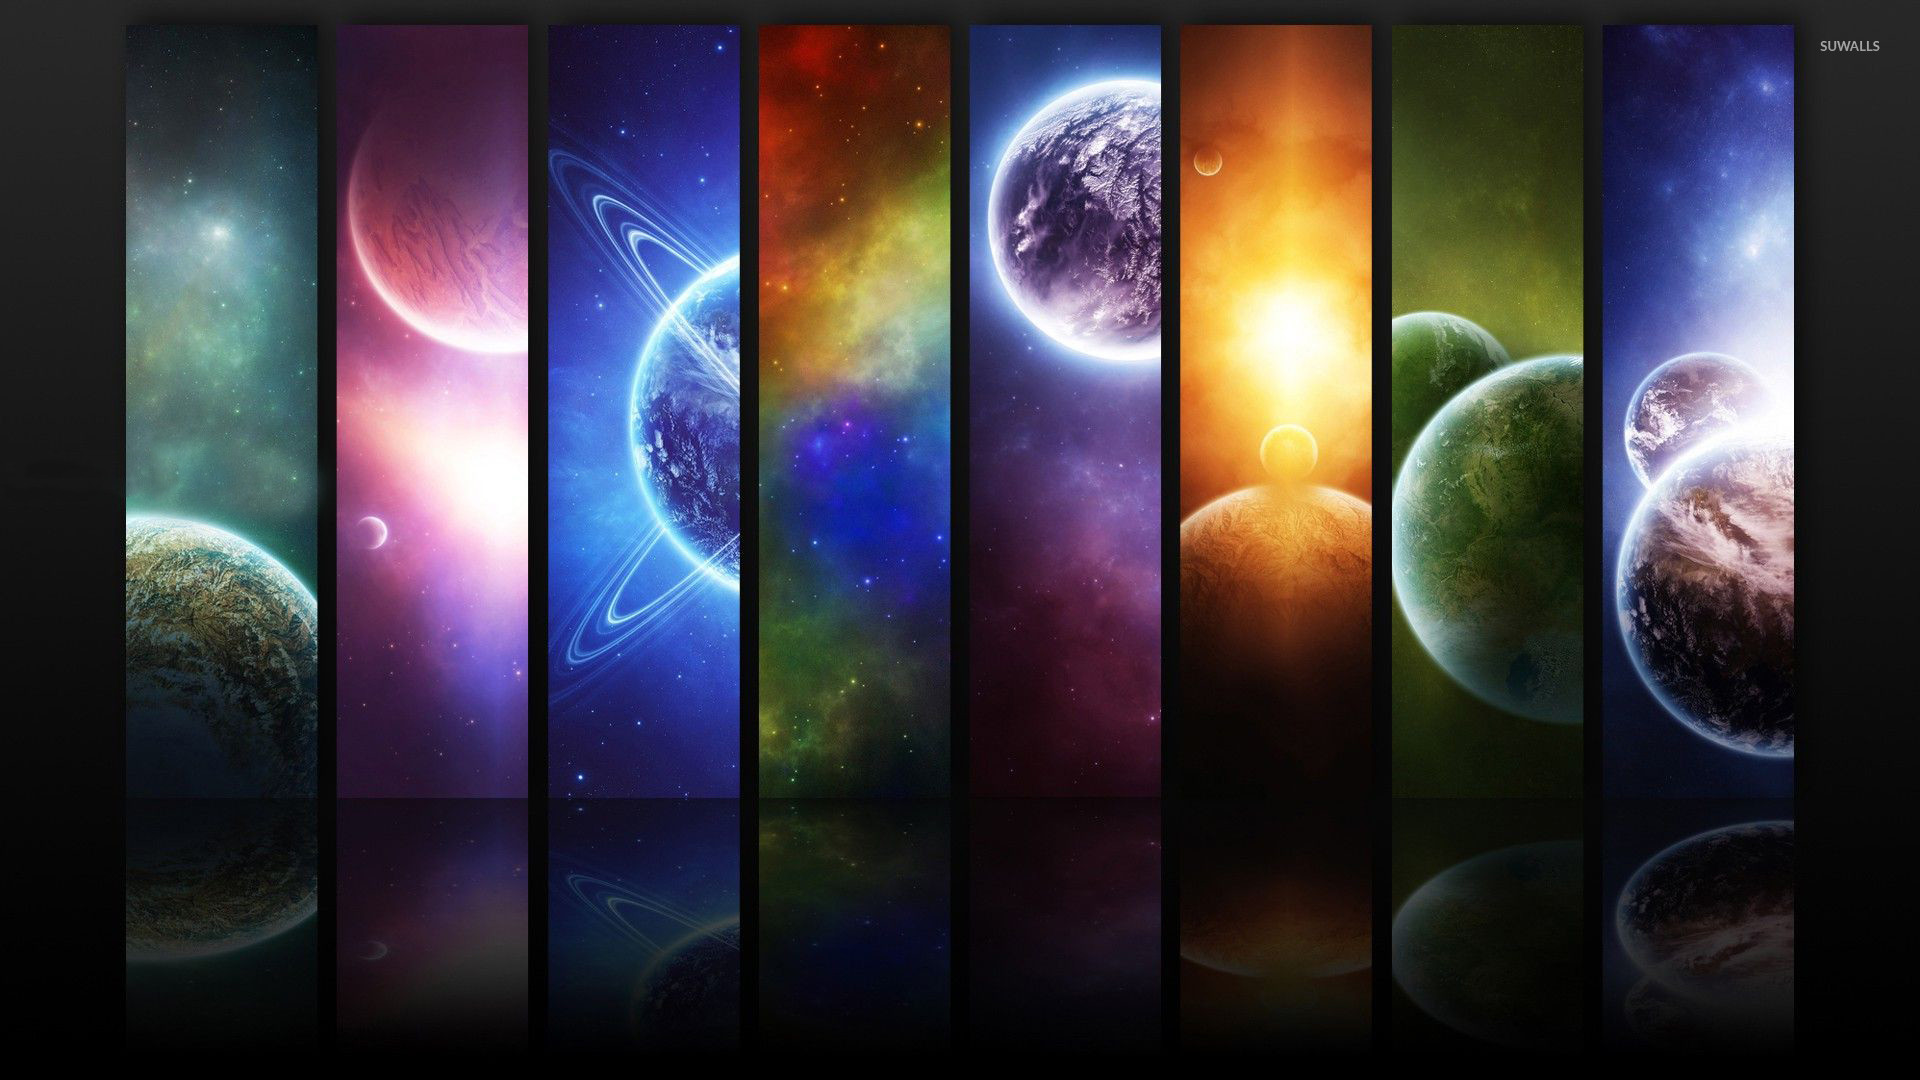 Universe wallpaper 1920x1080 87 images - Solar system hd wallpapers 1080p ...